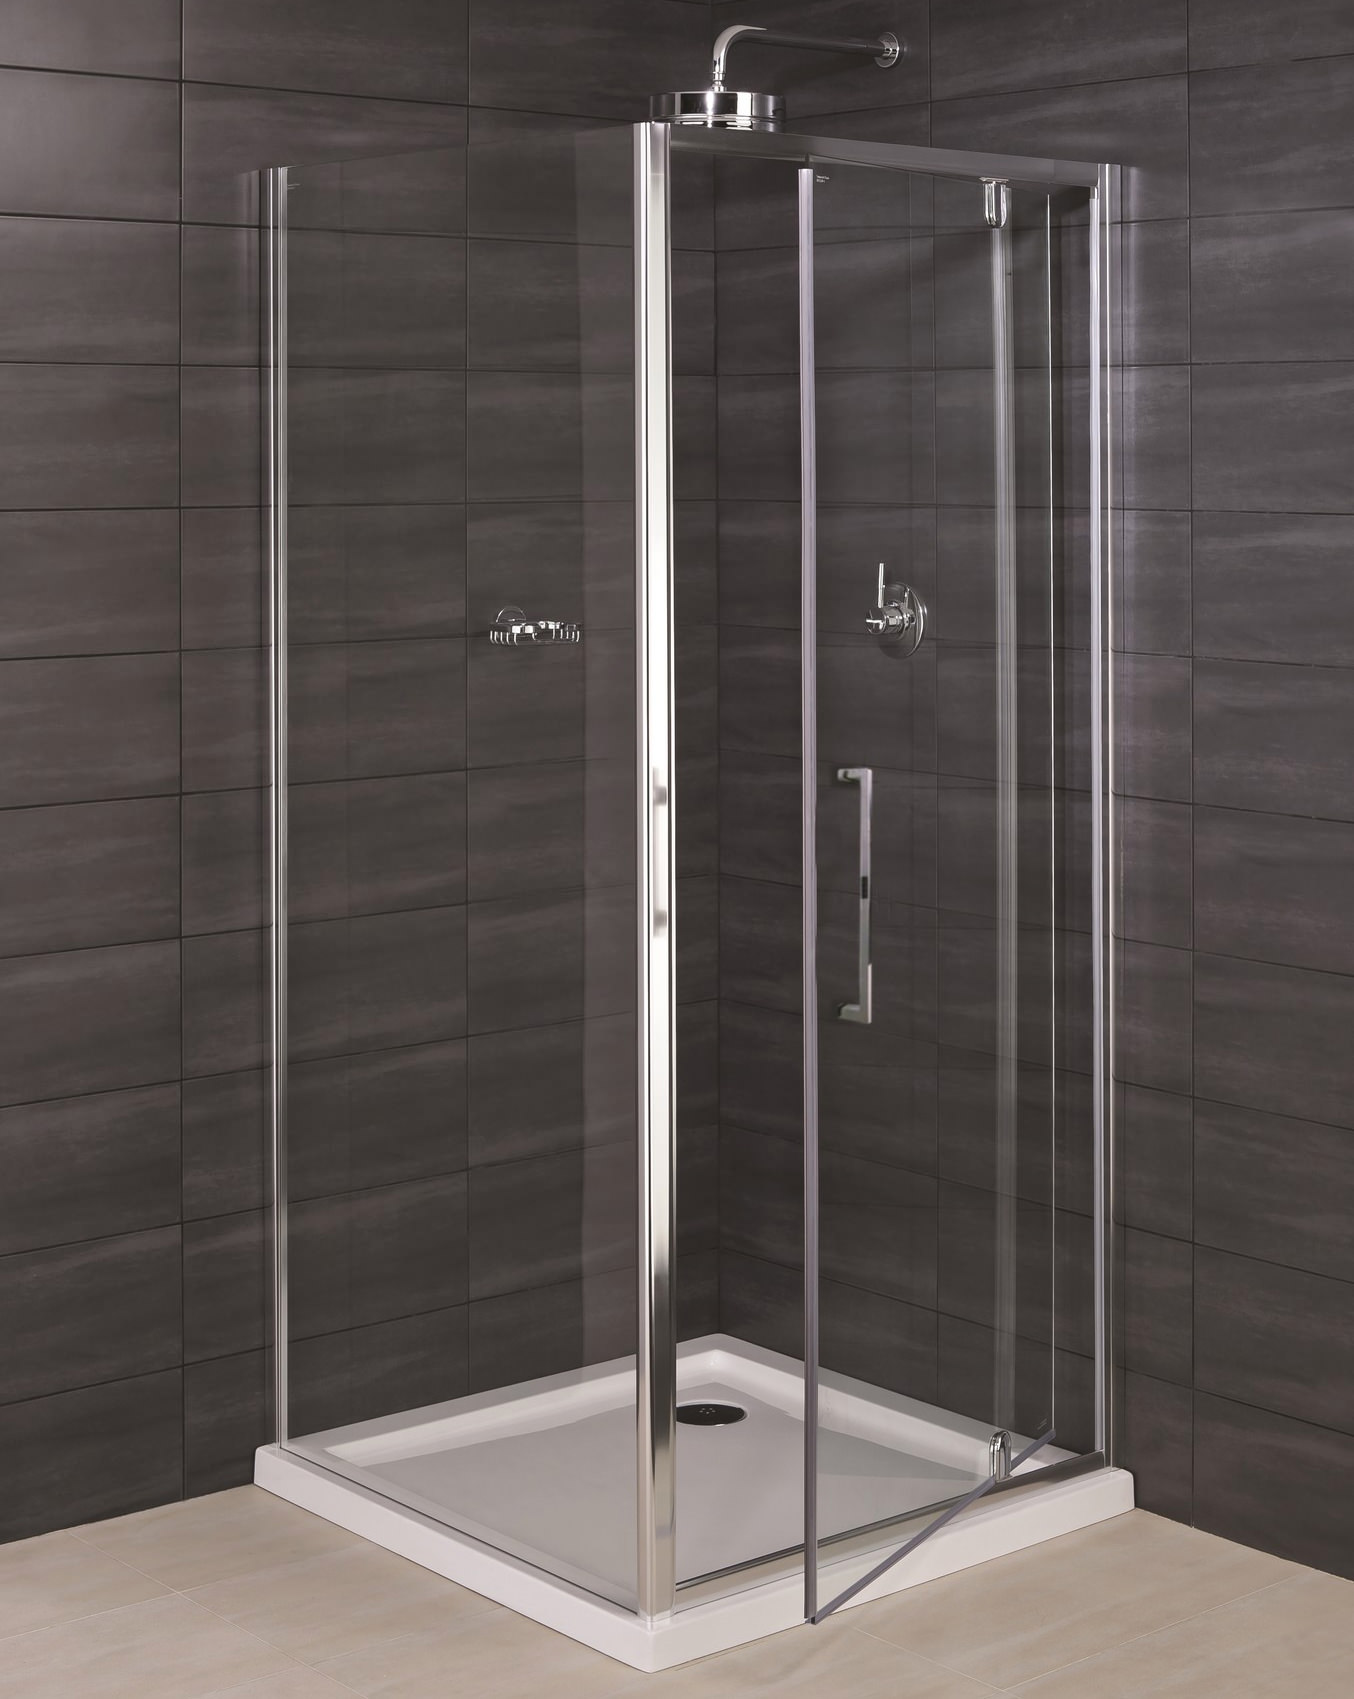 Shower Cubicle – Prayosha Enterprise Ltd.